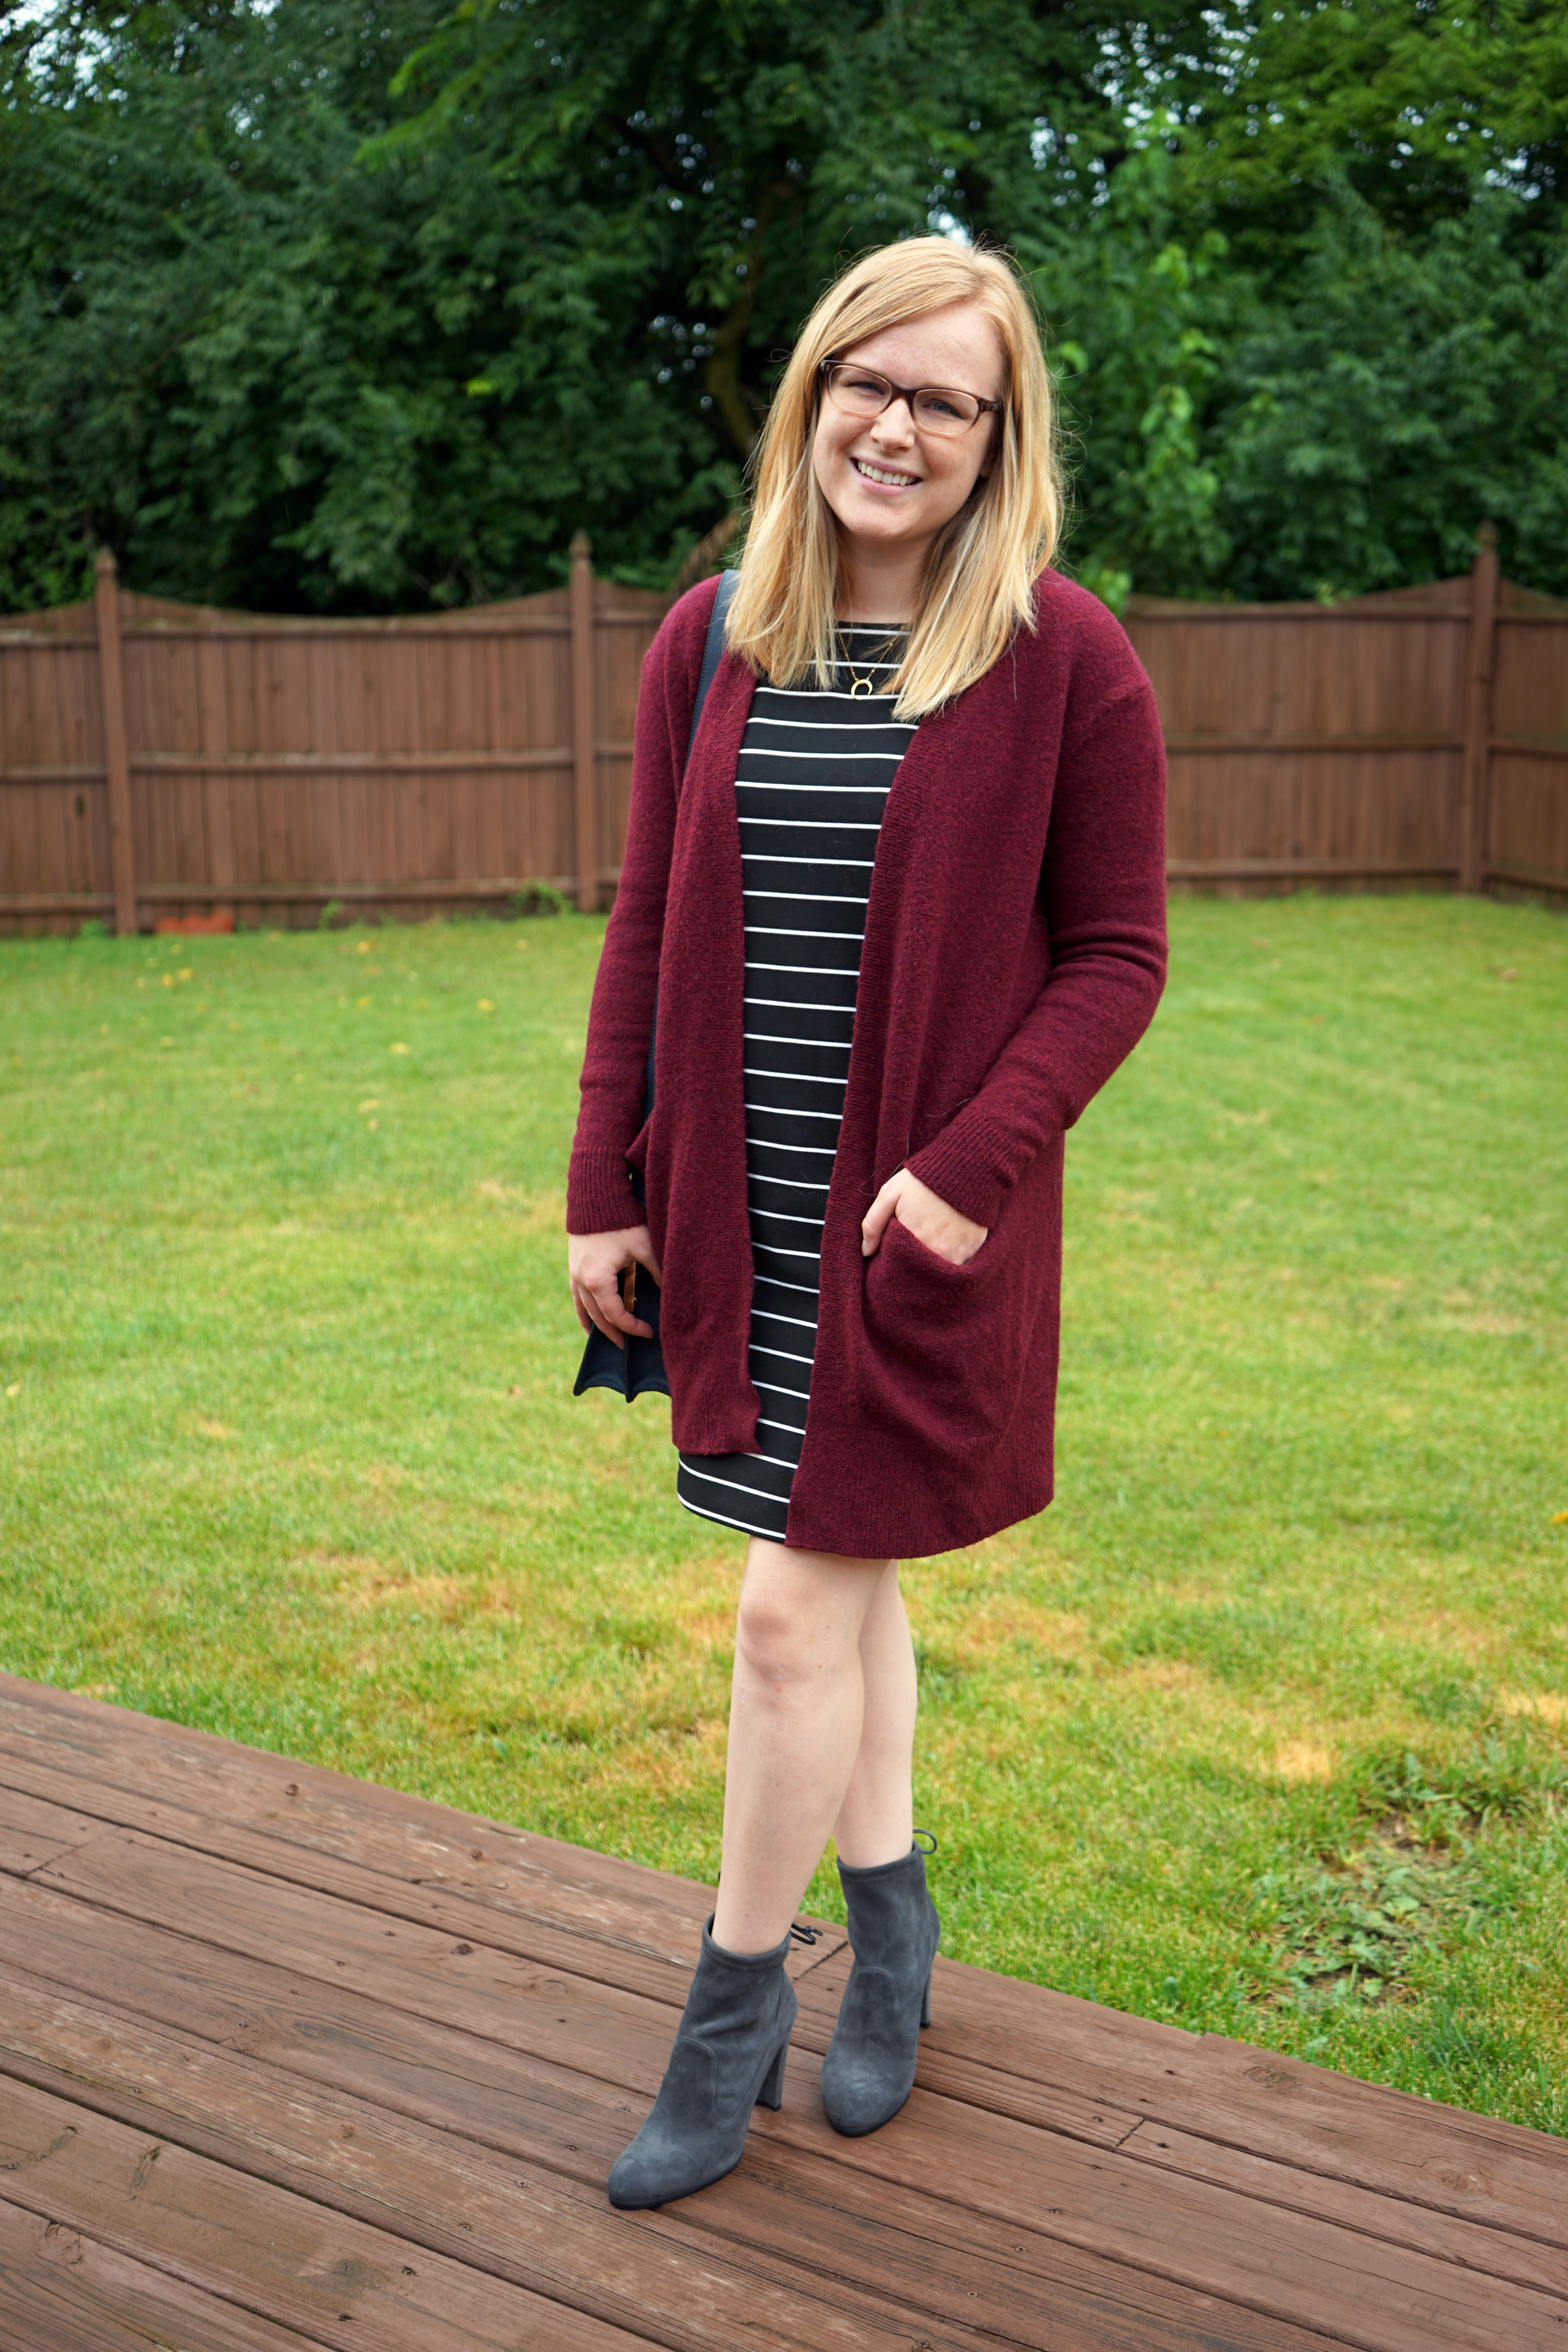 Maggie a la Mode - My Summer to Fall Outfit 1.JPG